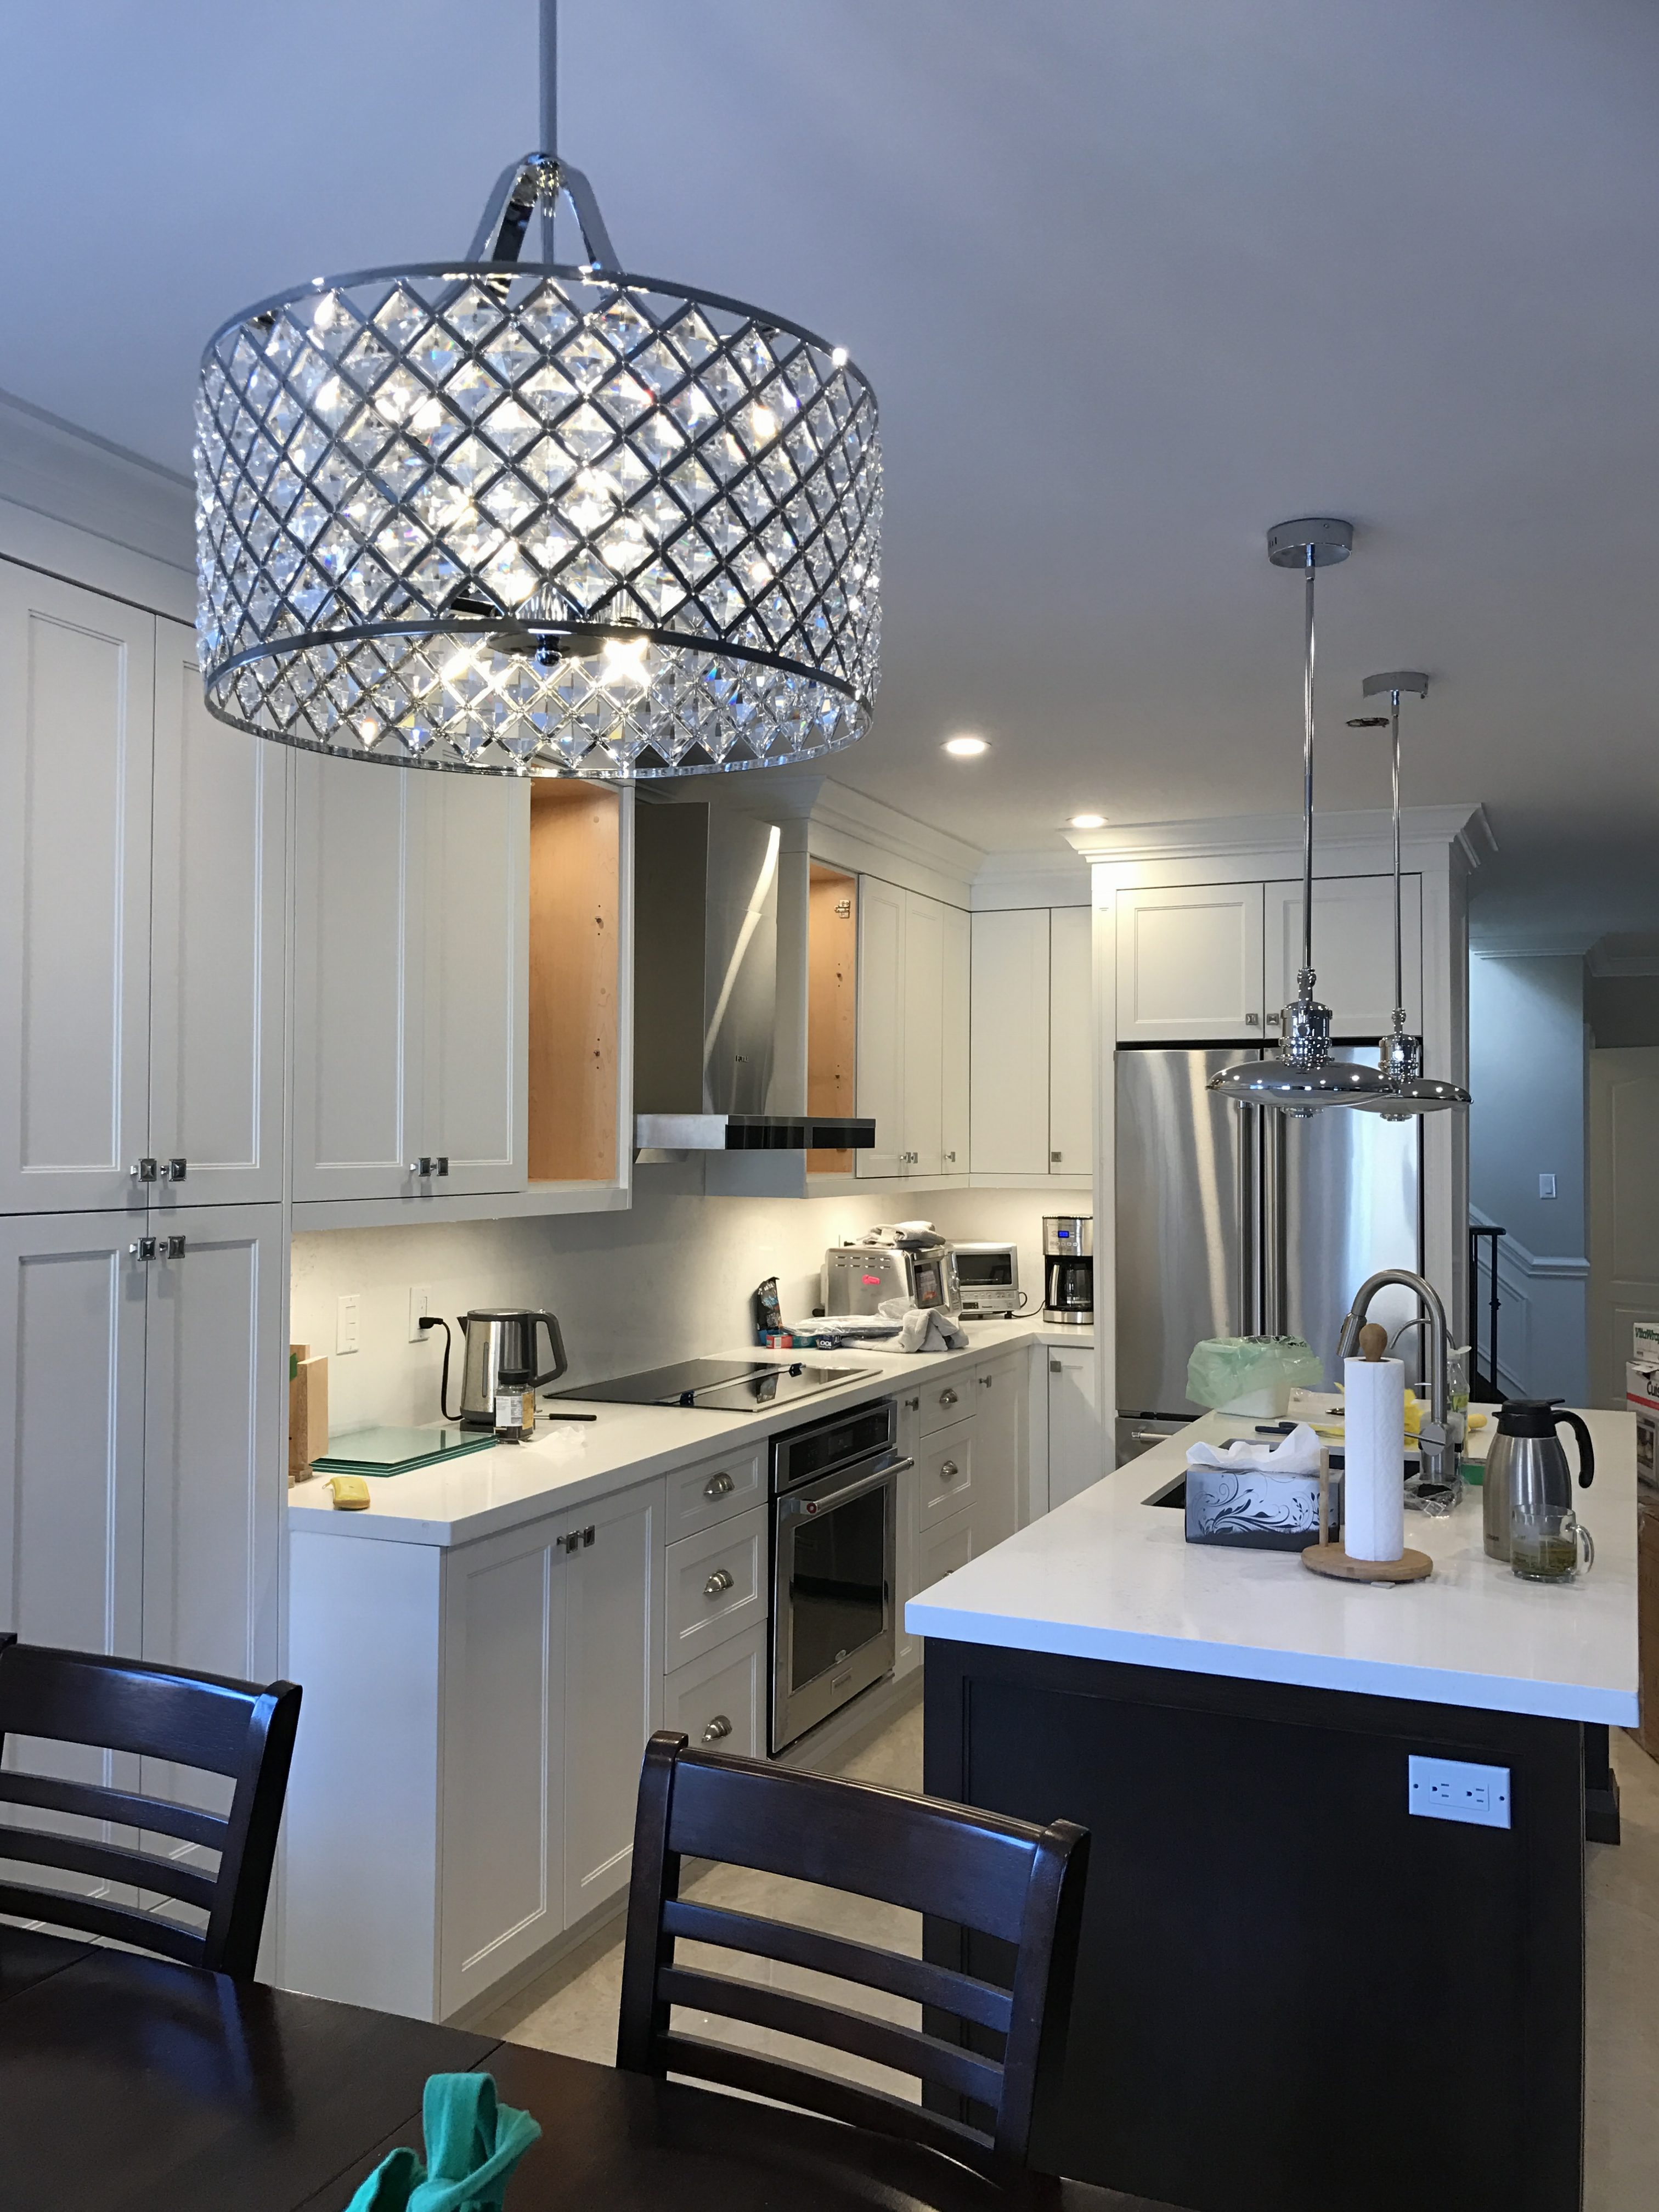 Kitchen cabinetry picture